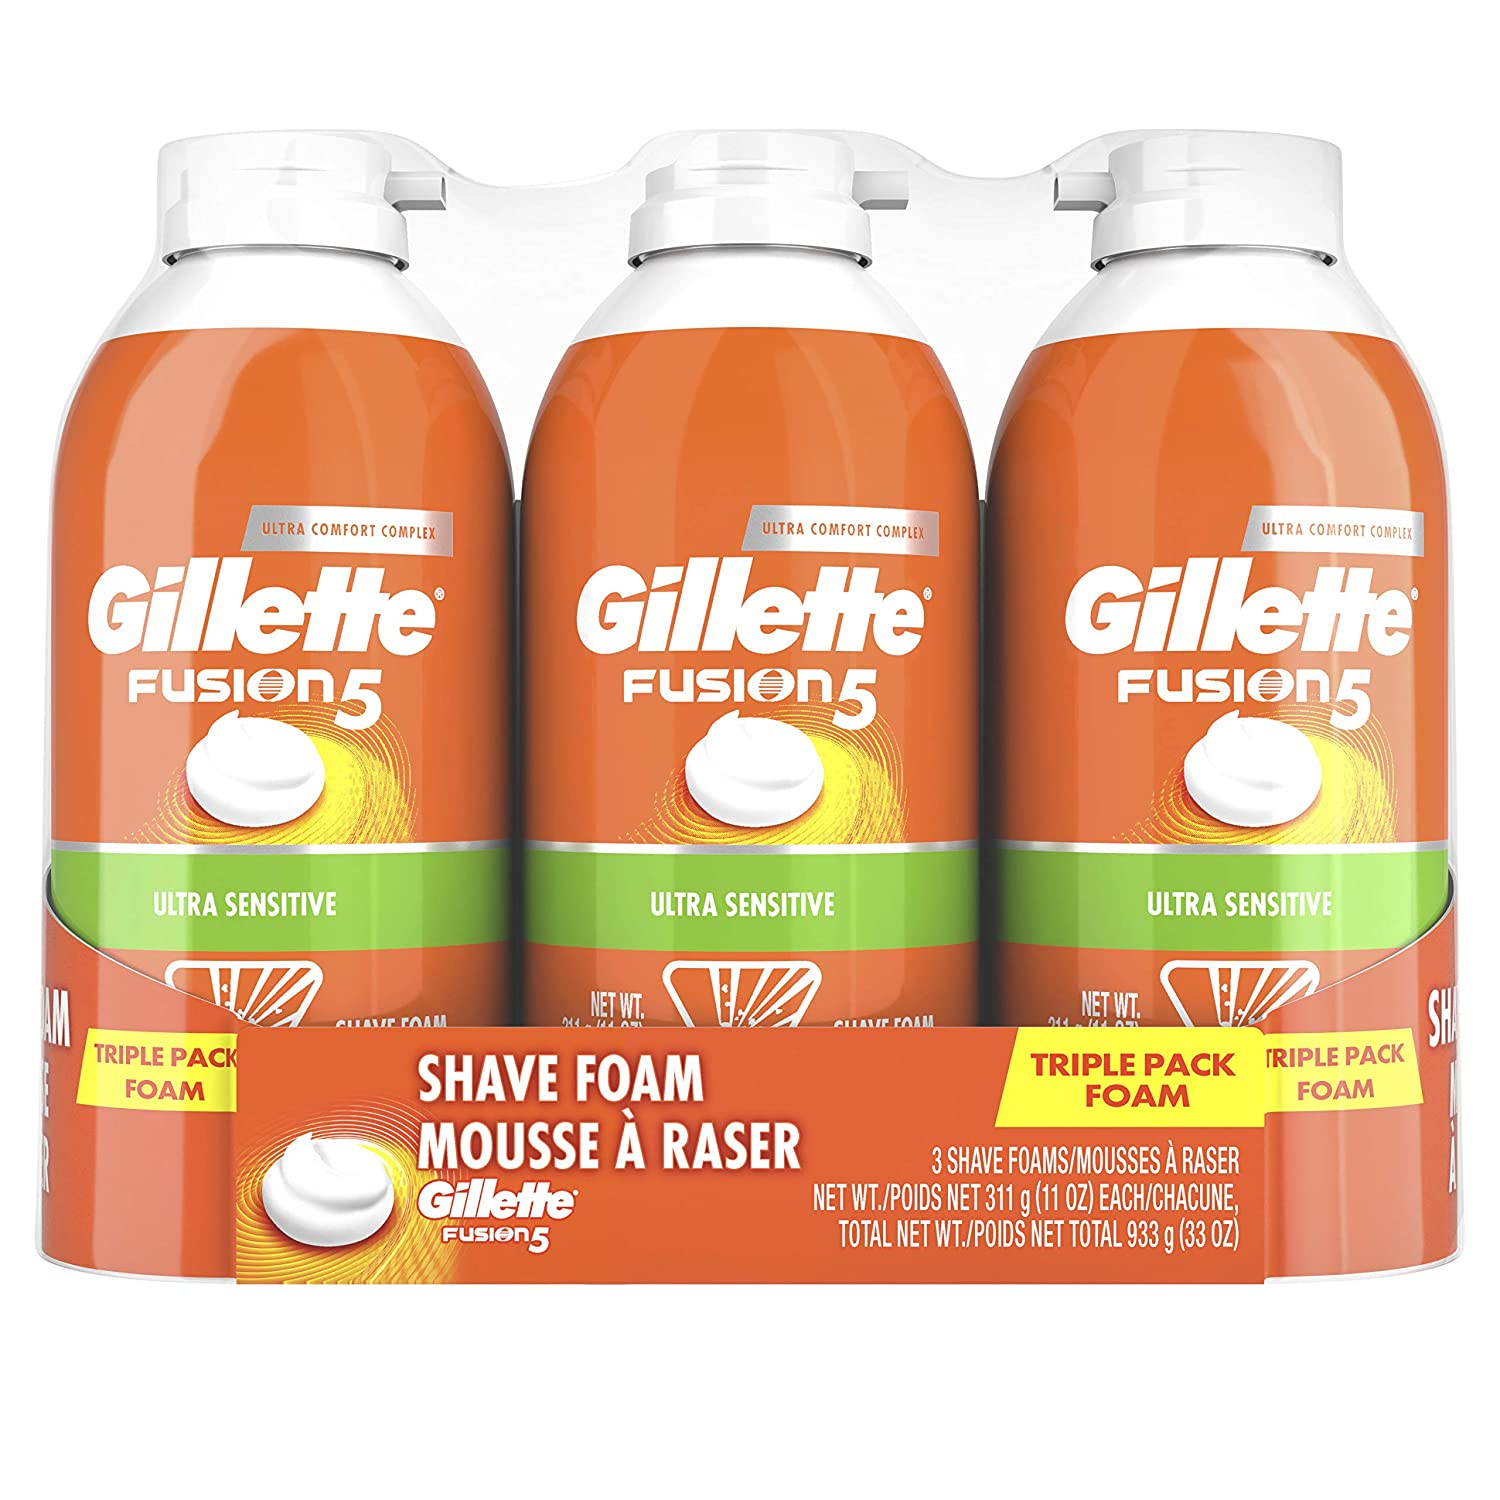 Gillette Fusion5 Ultra Sensitive Shave Foam, 11 Ounce (Pack Of 3)